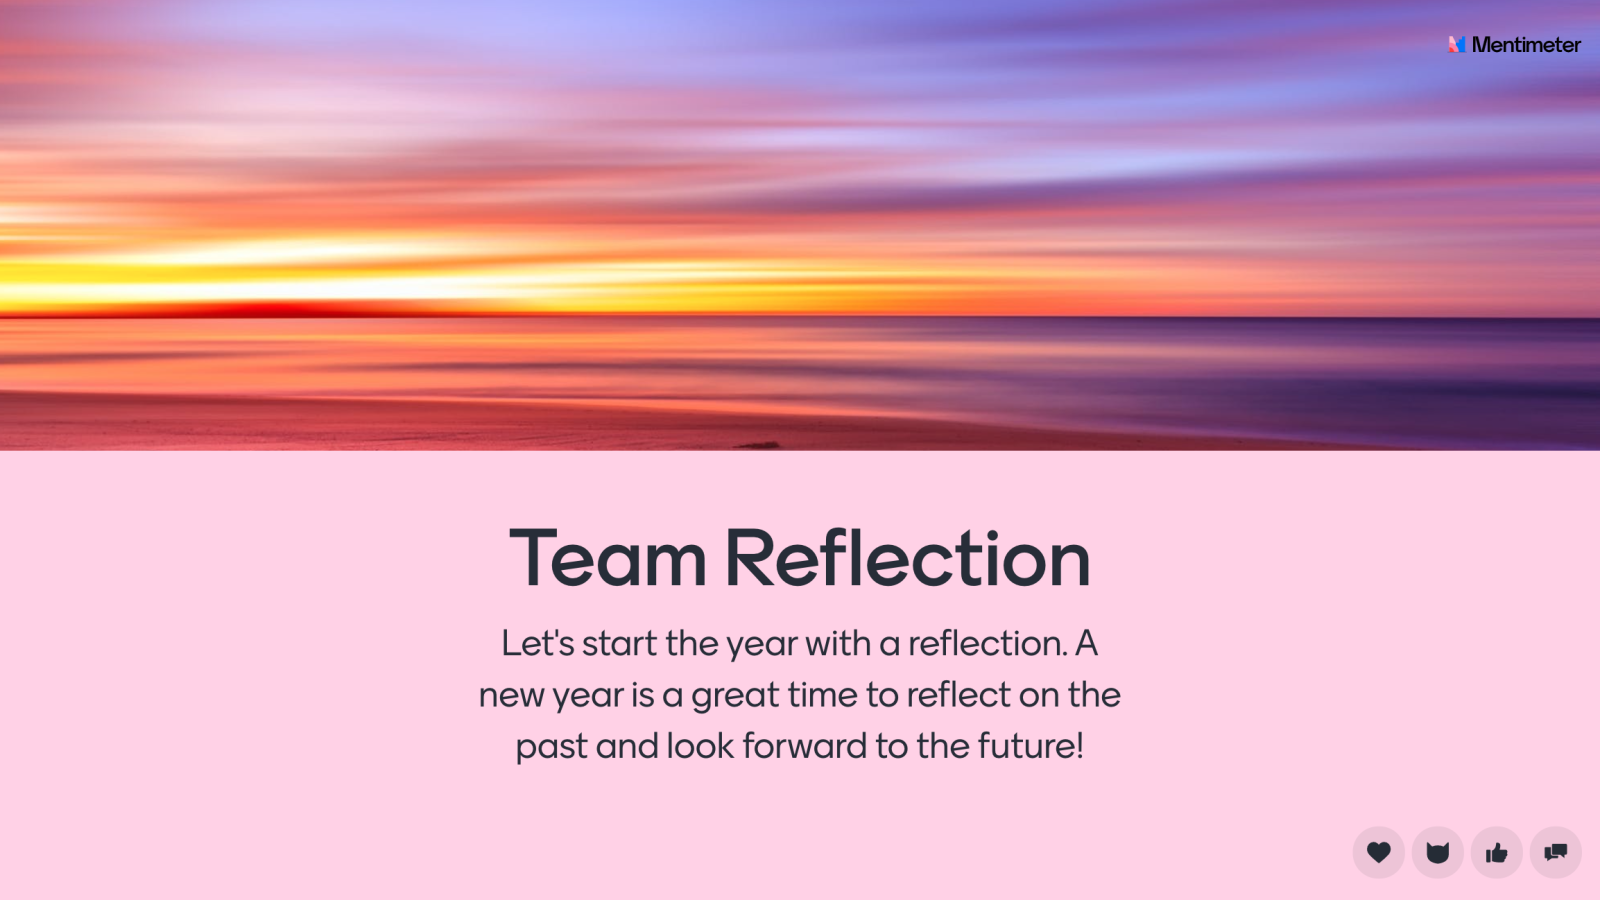 Team reflection